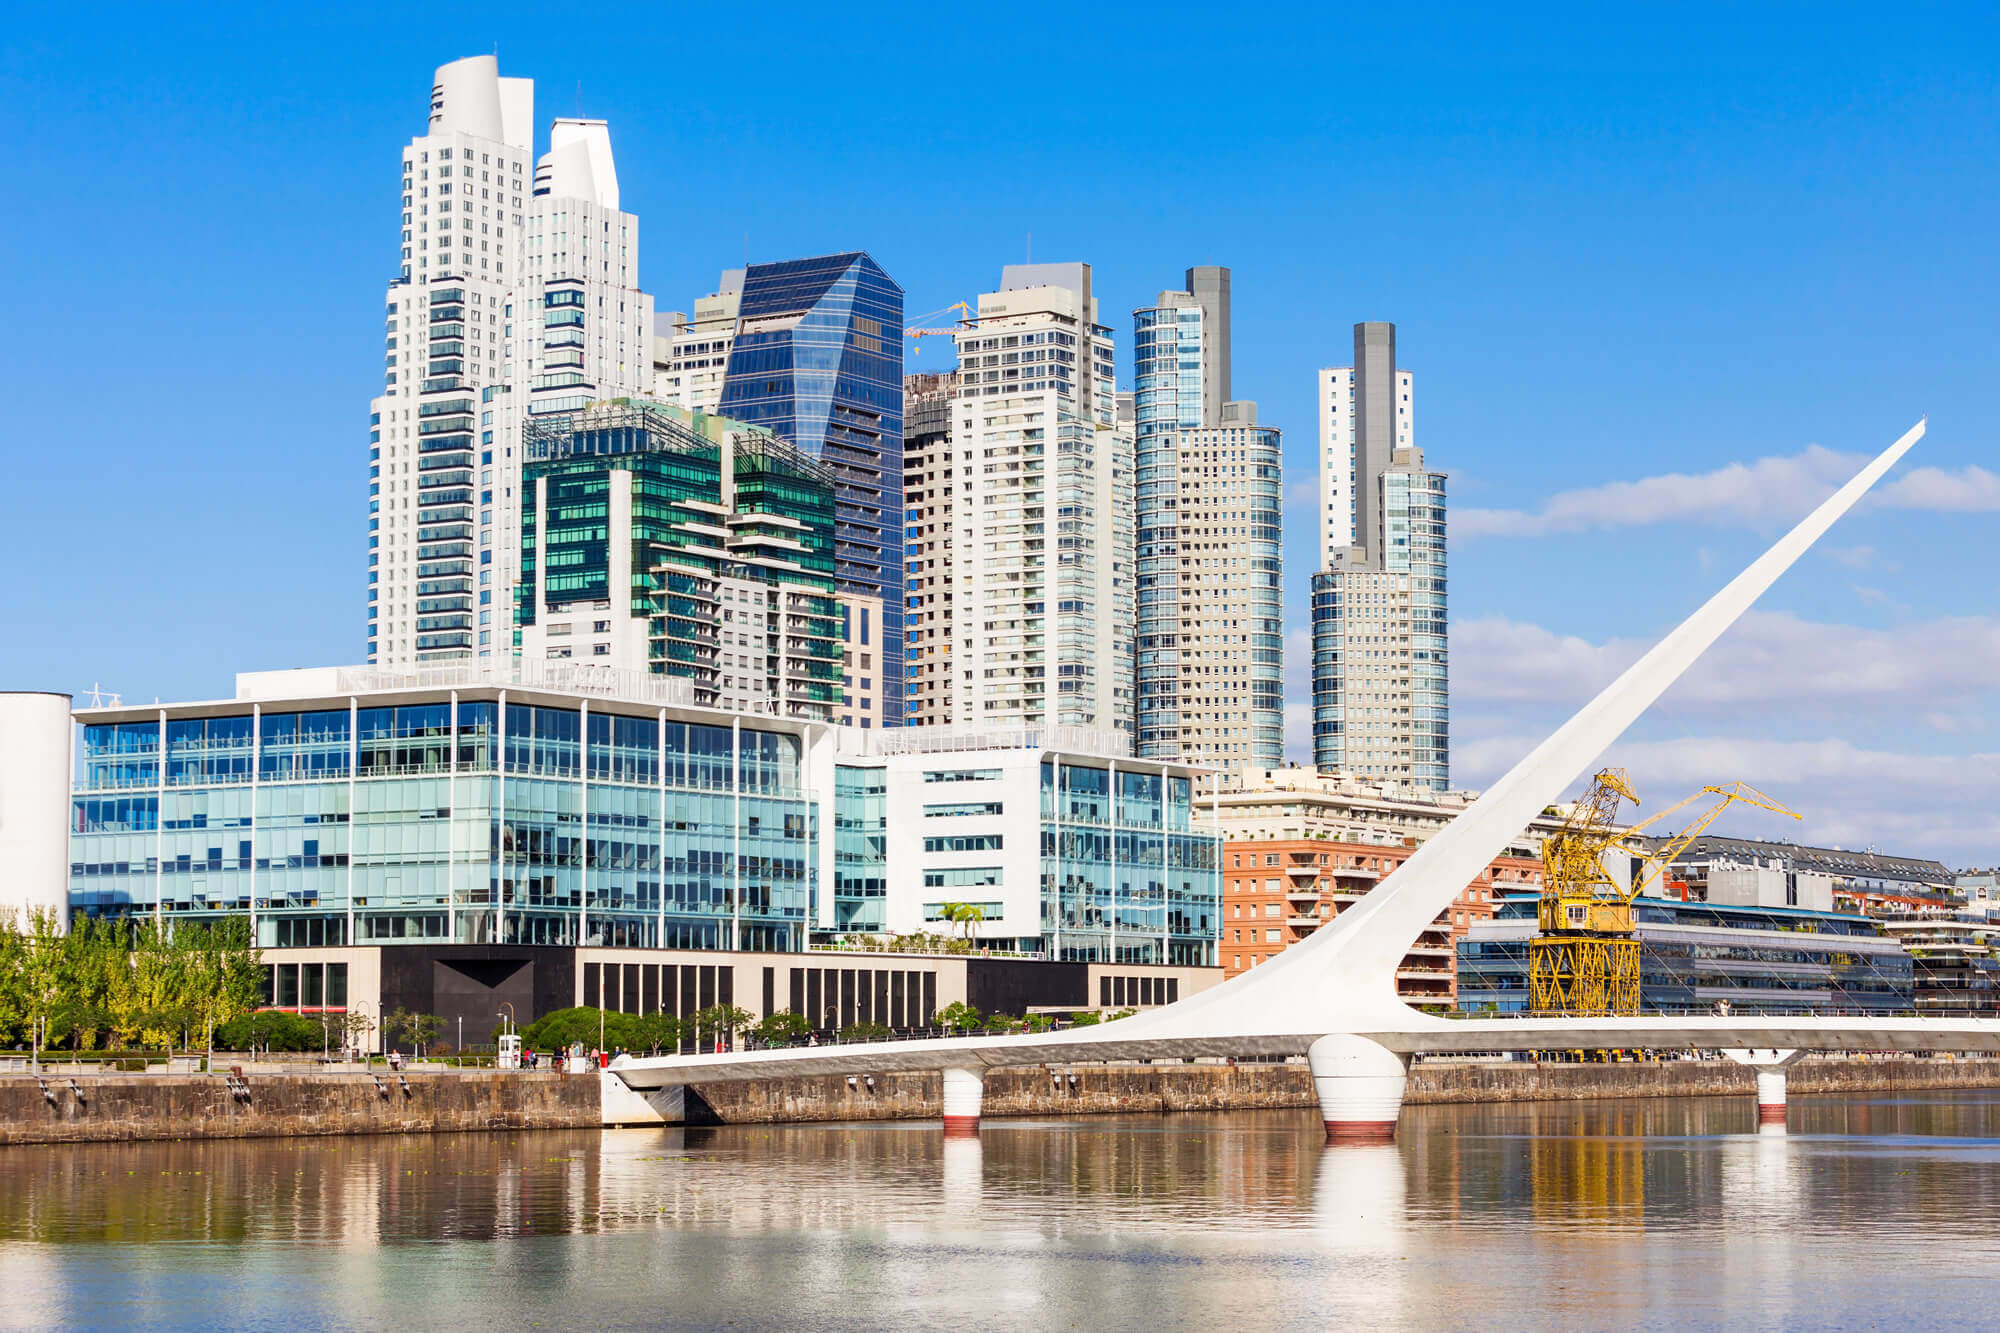 Puerto Madero district of Buenos Aires